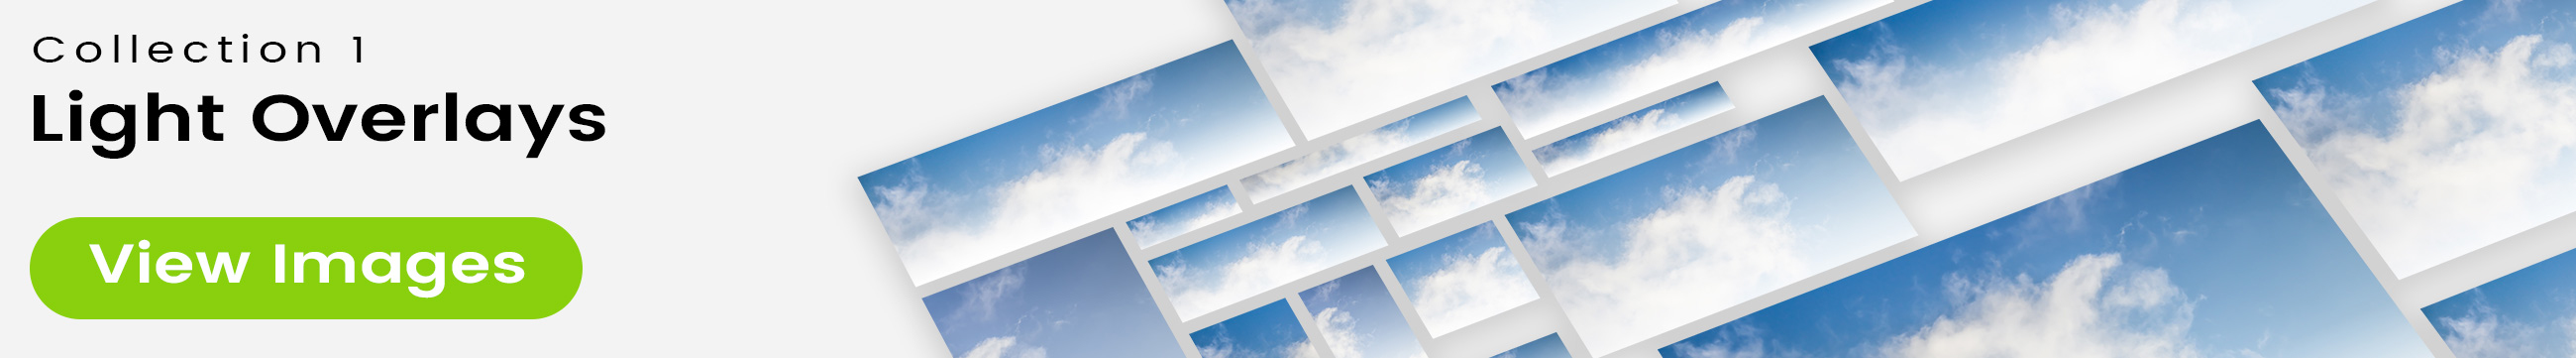 See 25 bonus images included with clouds stock image 9463. Collection 1 of 4 features a light overlay design.